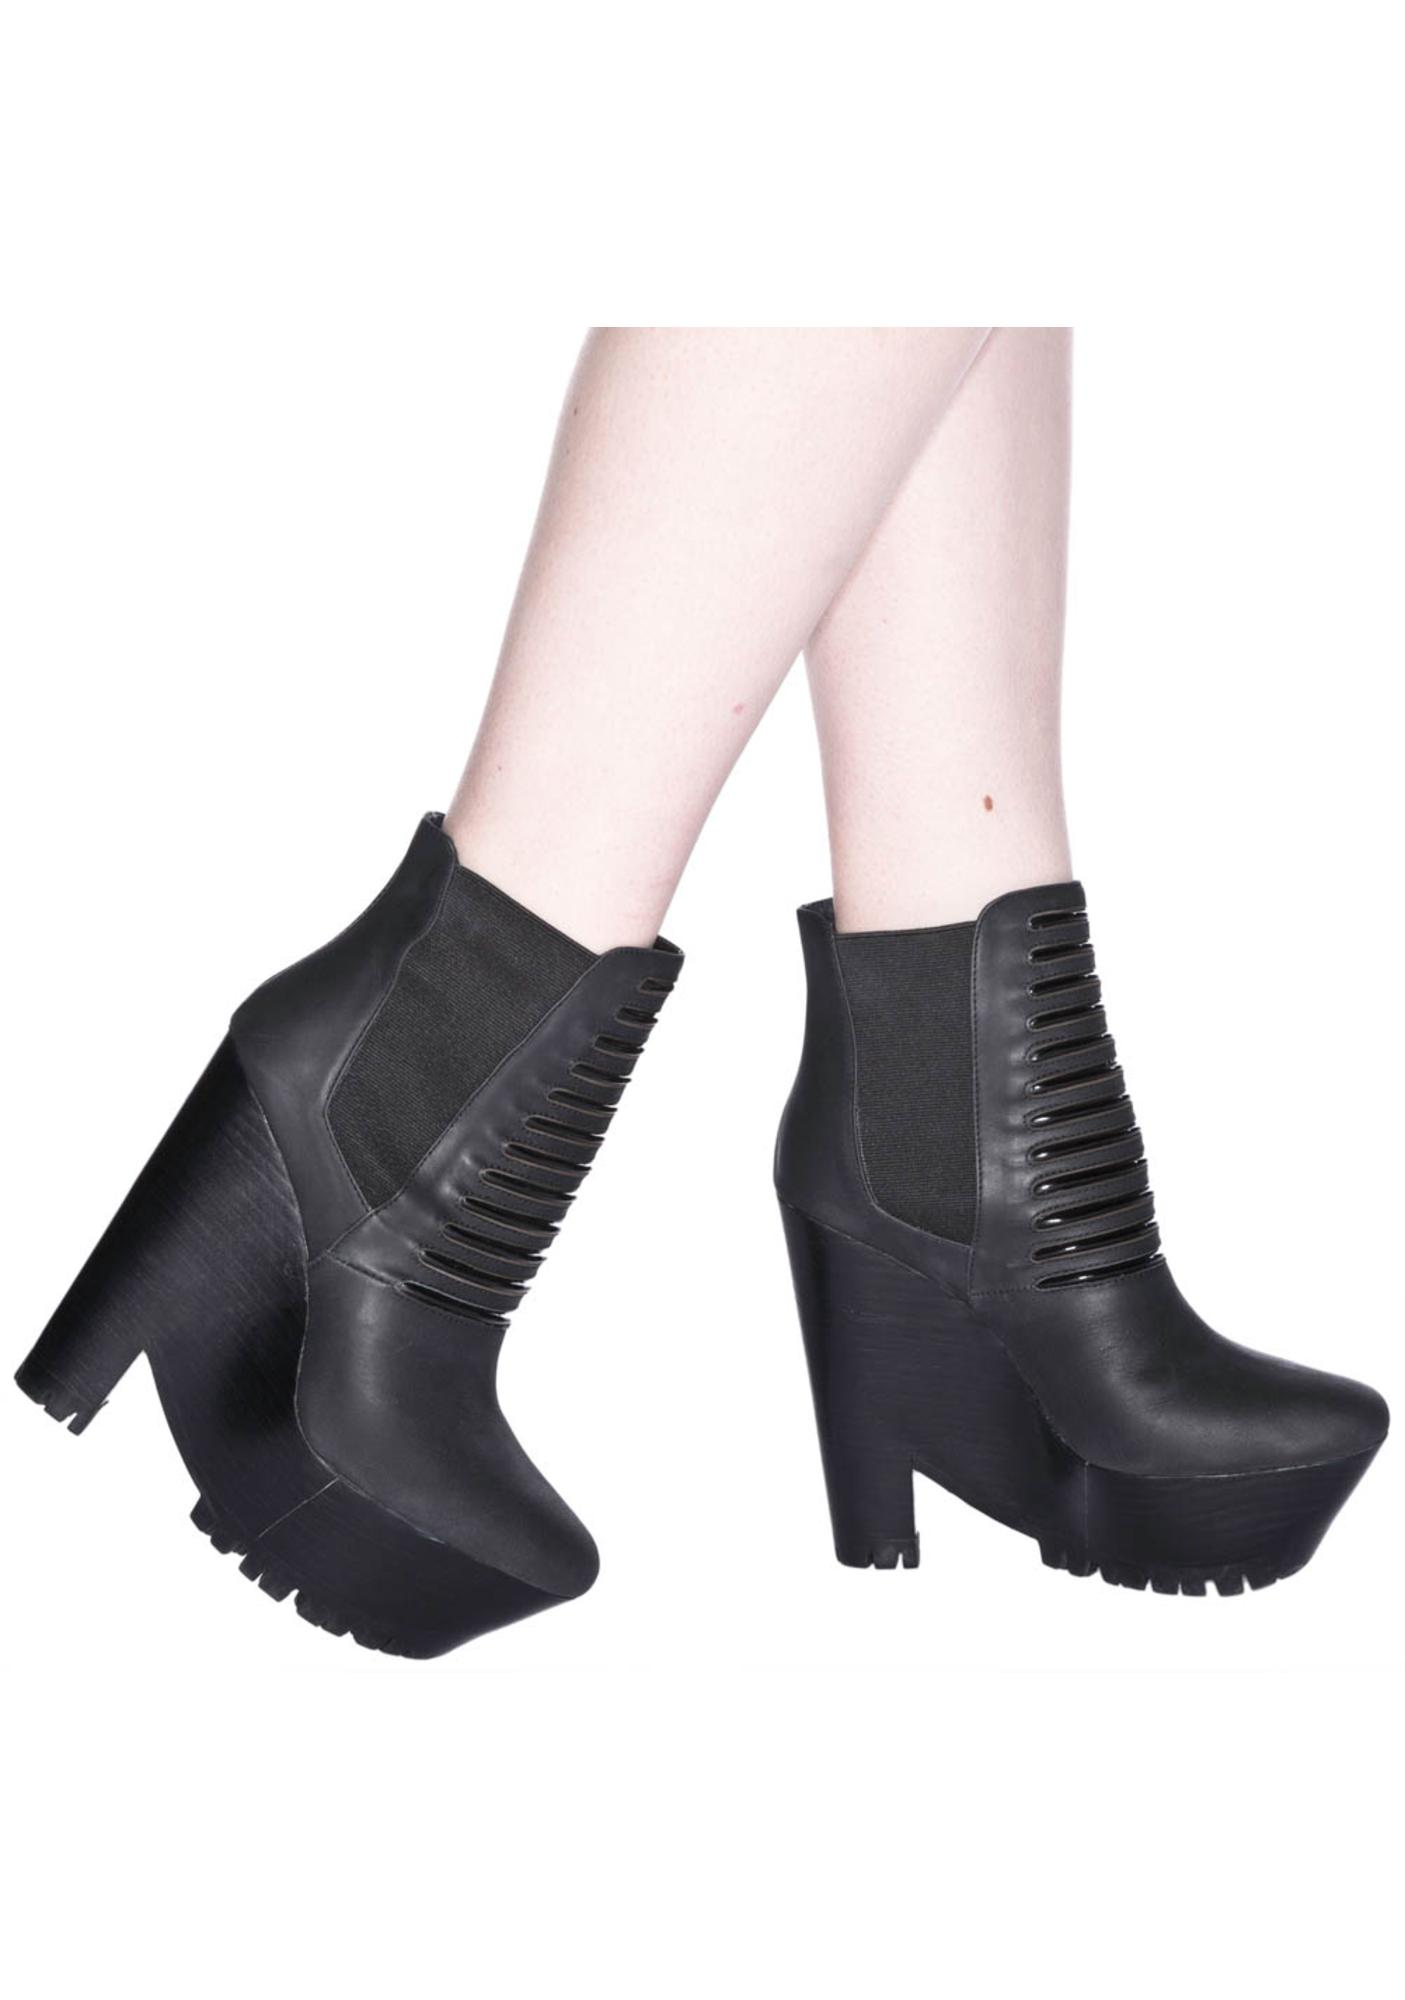 Messeca Bridgette Platform Booties